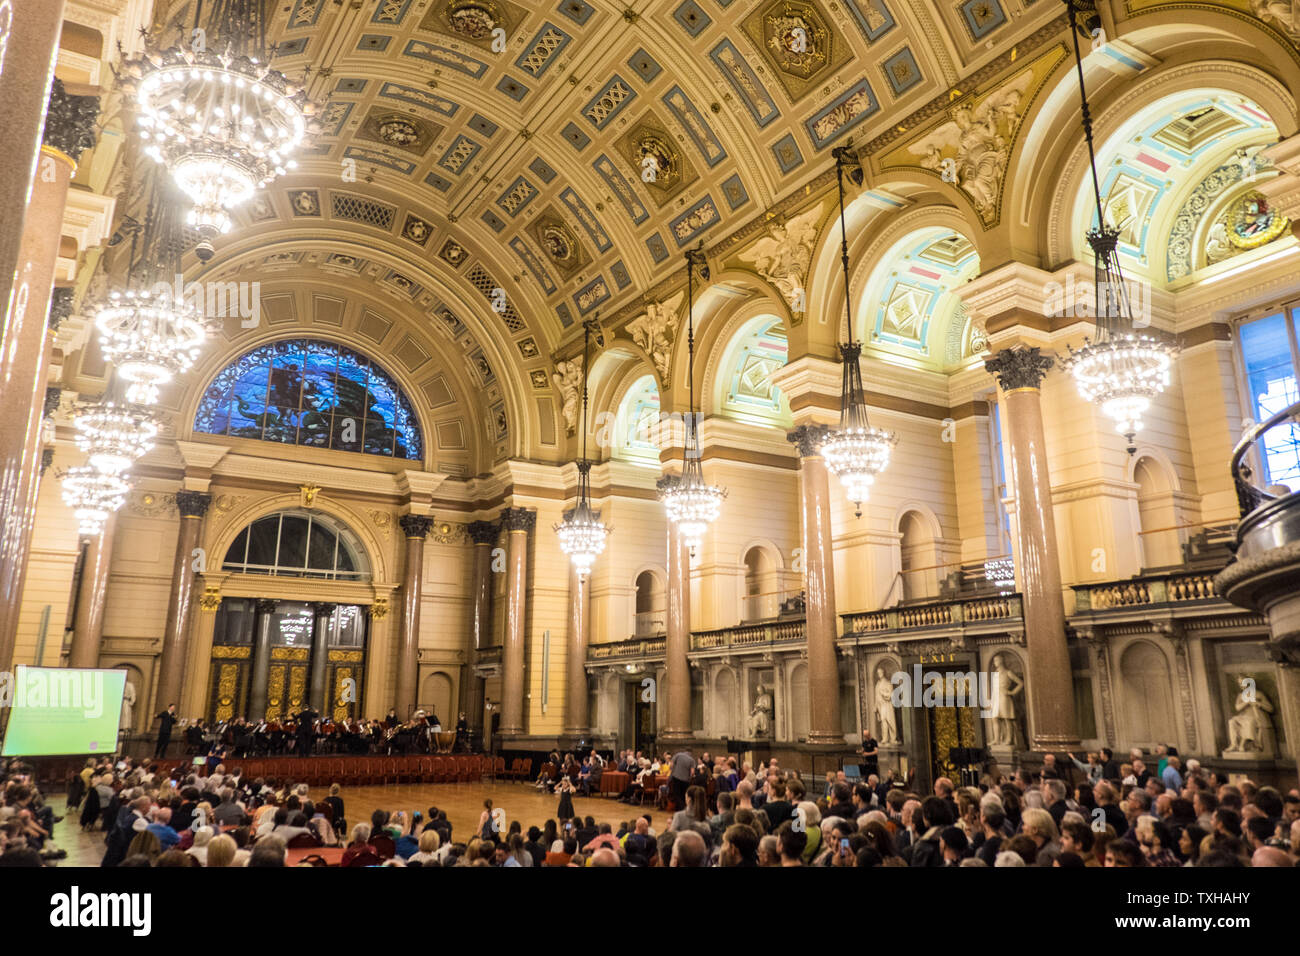 Lightnight Performance At St Georges Hall Inside Interior Liverpool North Northern City North West Merseyside England English Gb Britain British Uk Stock Photo Alamy